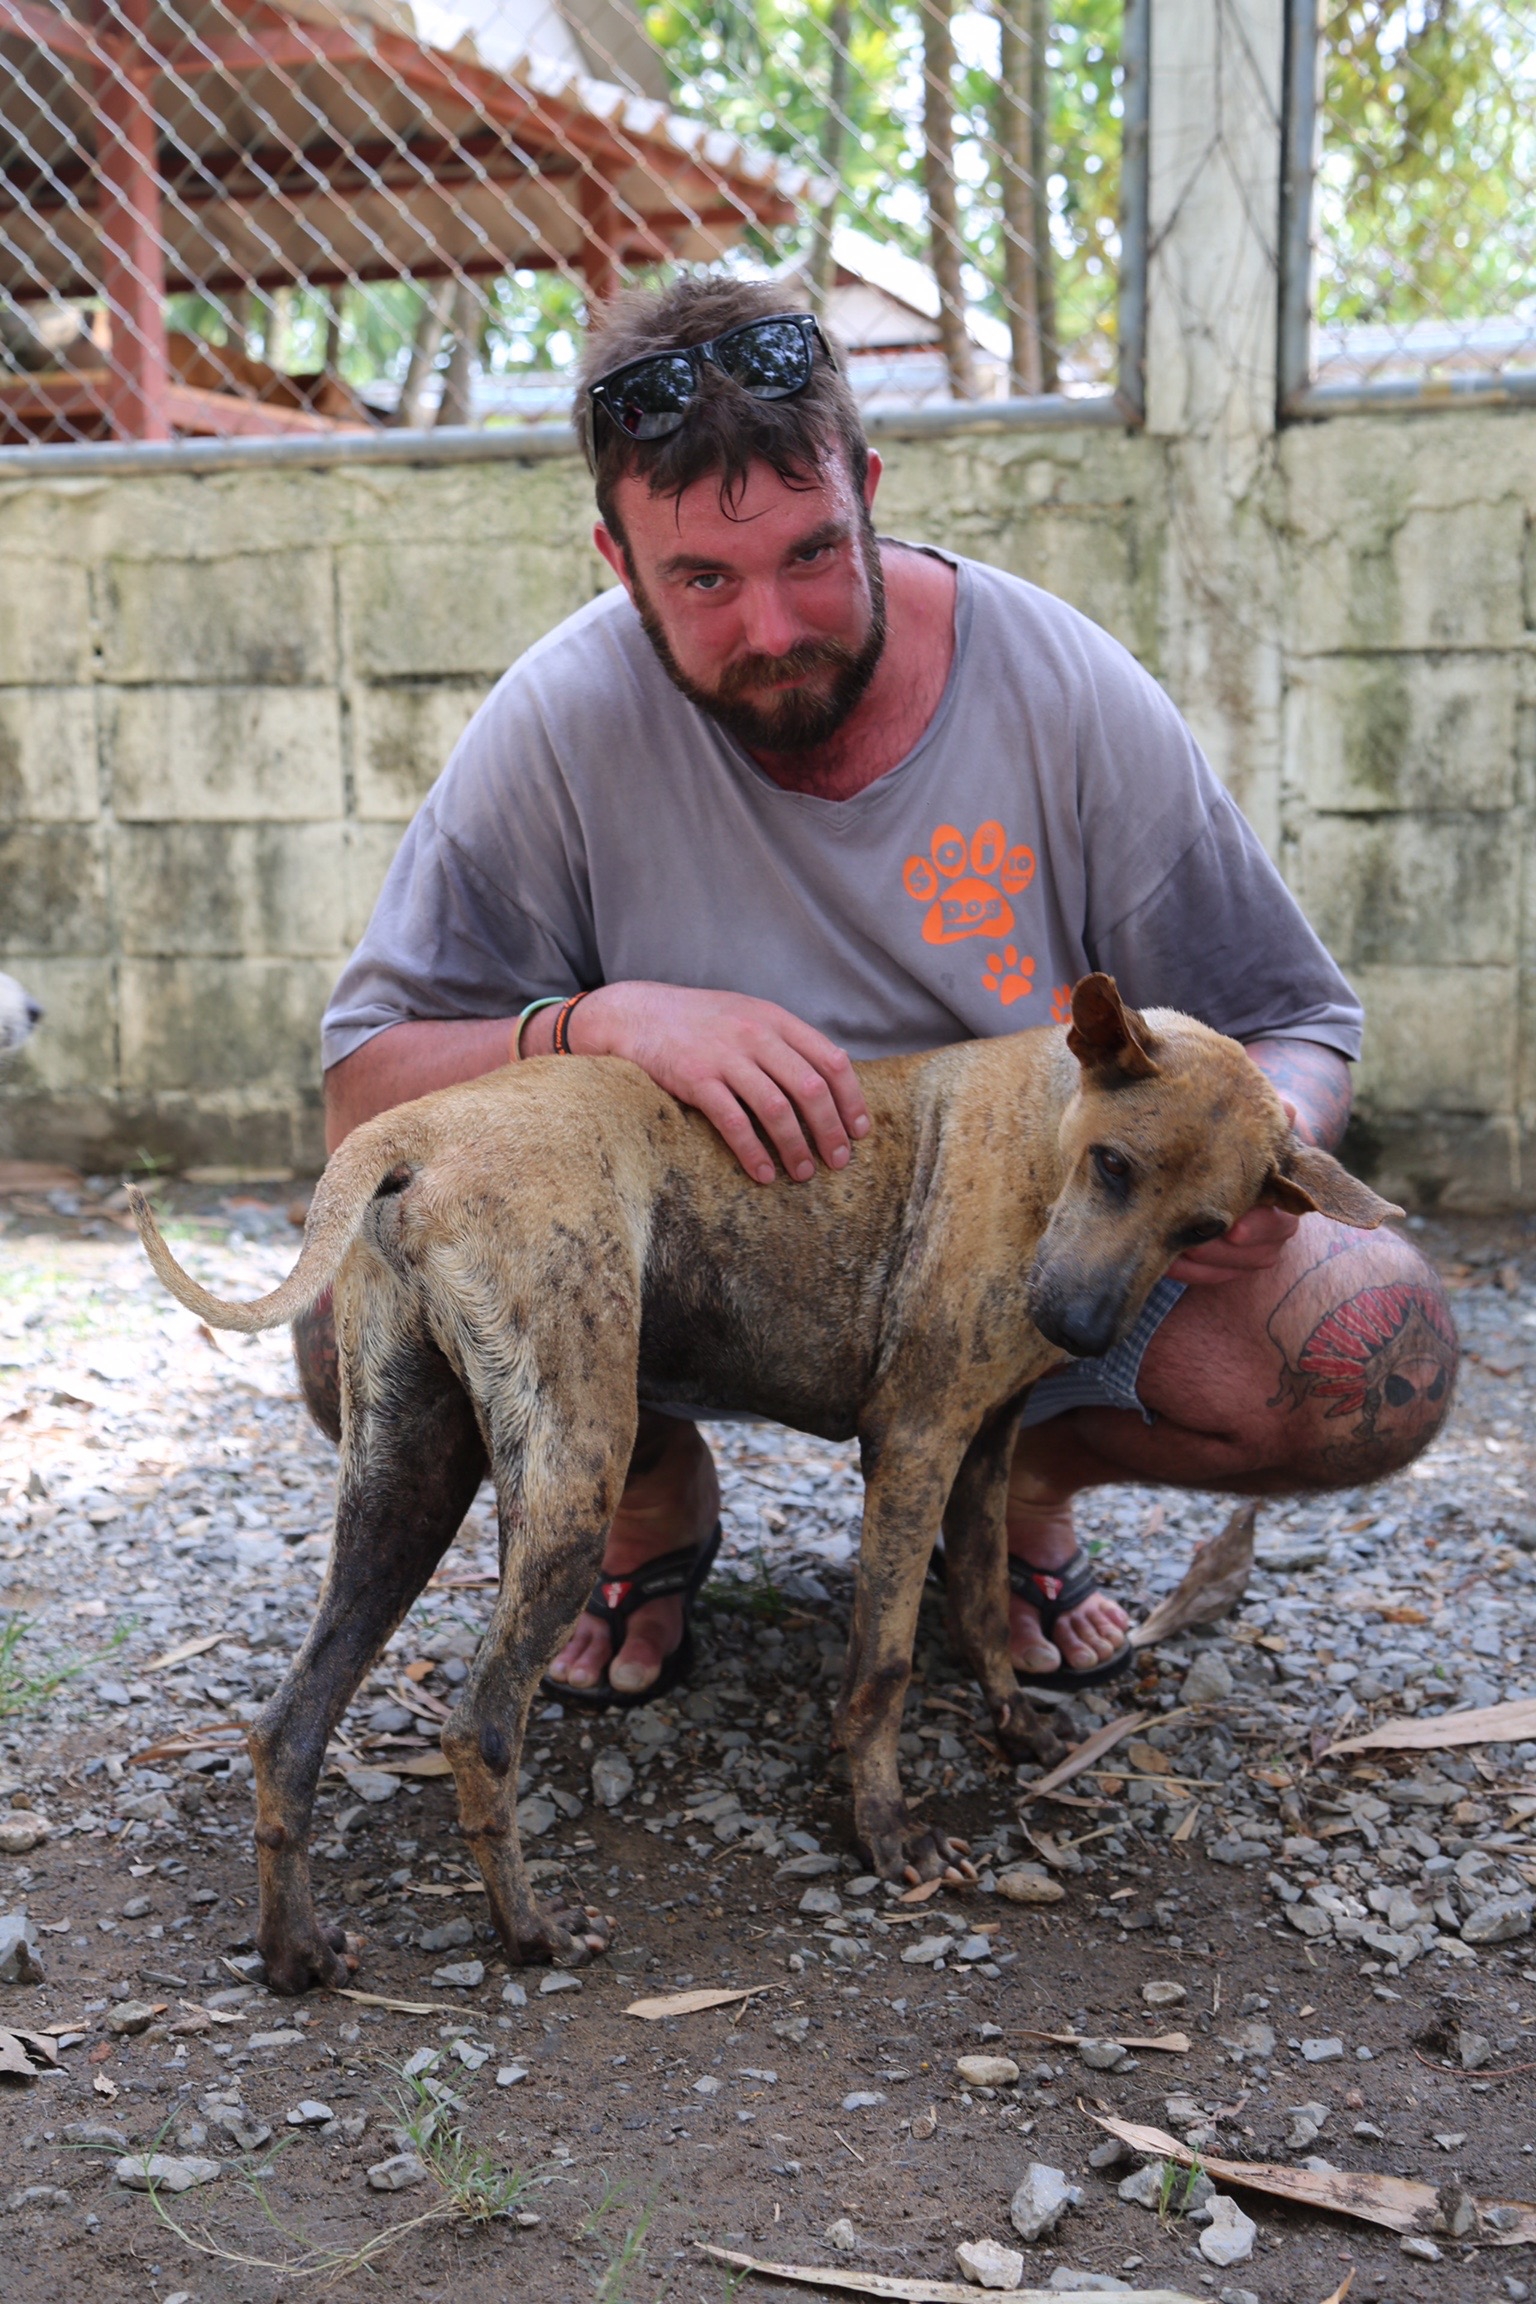 Rescue from Dog Meat Trade